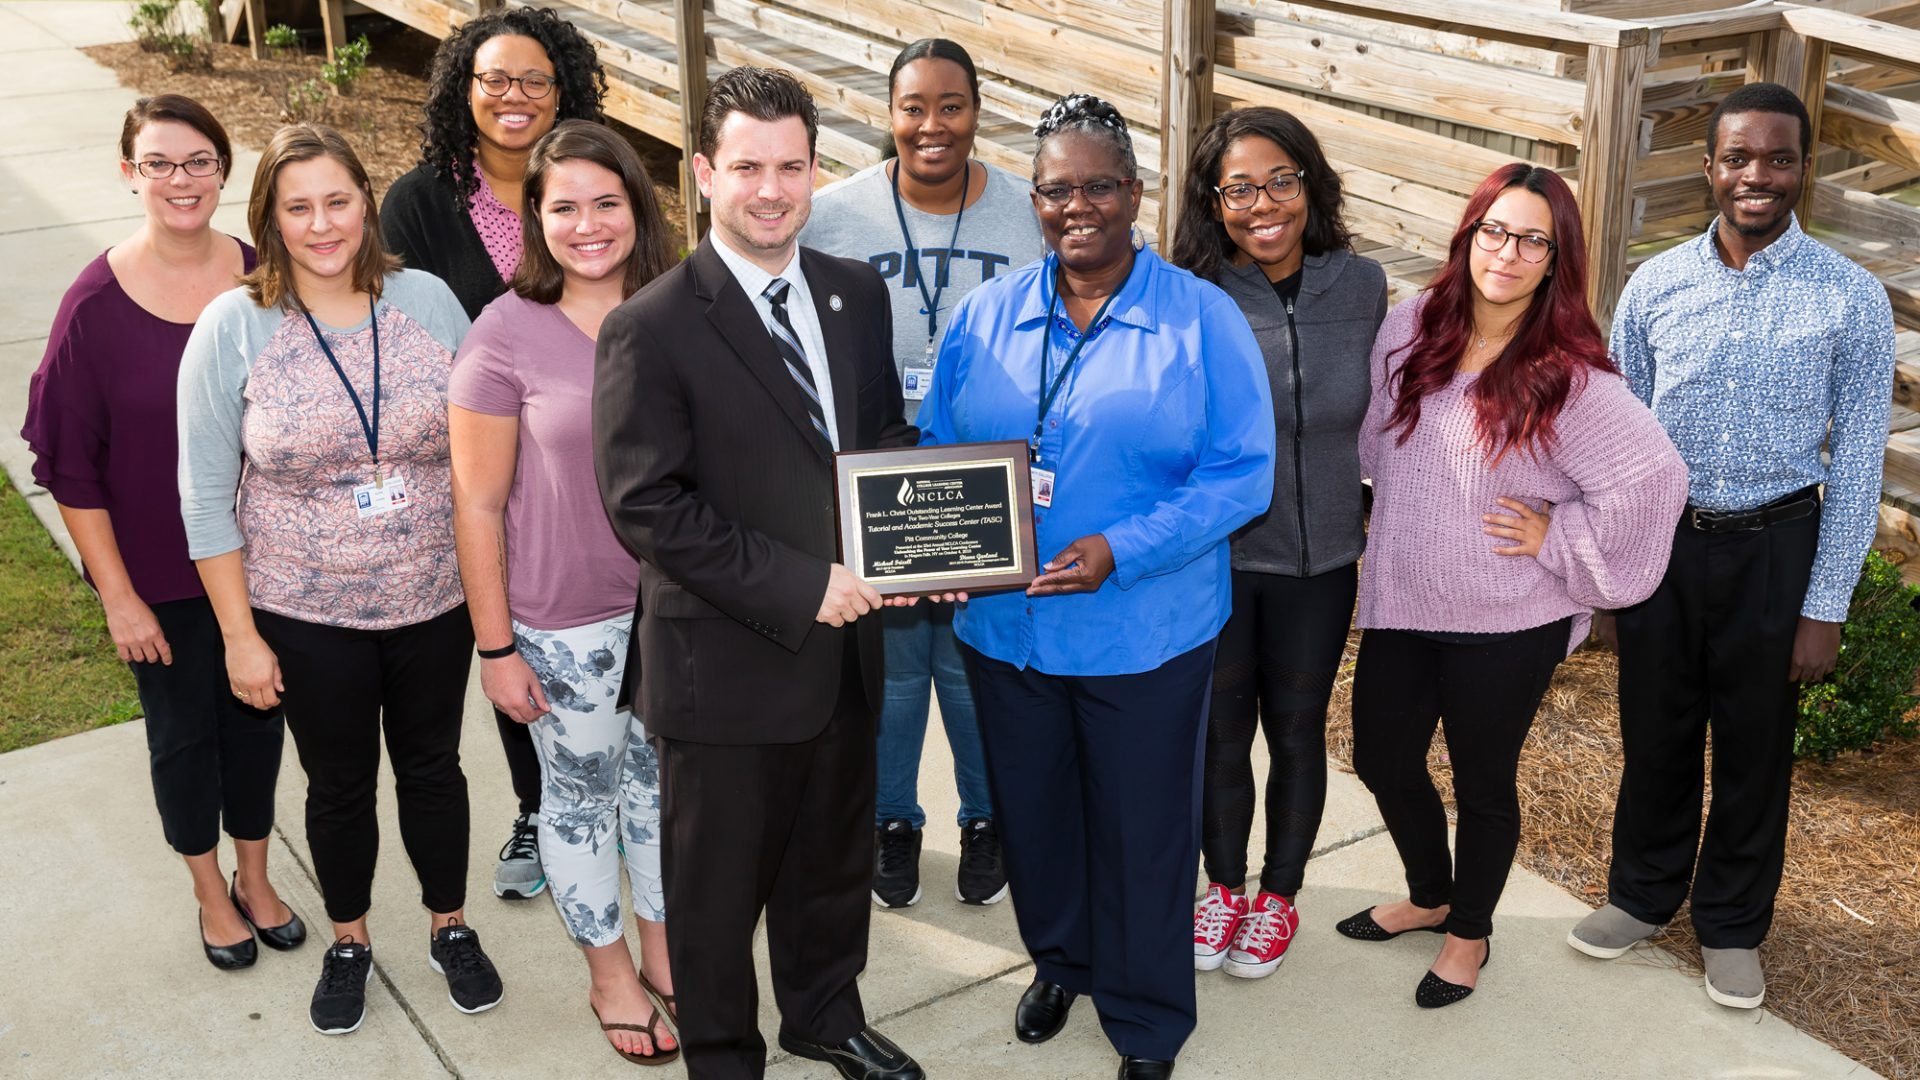 Joined by PCC tutors, TASC Director Nicholas Vick (fifth from left) displays the 2018 Frank L. Christ Outstanding Learning Center of the Year Award for Two-Year Colleges. Pictured with Vick are, left to right: Julianna Juchniewicz, Alicia Young, Alisha Animashaun, Marissa Hunt, Deanna Edwards, Bonnie Sutton, Temptaous McKoy, Sarah Lee and George Cherry.